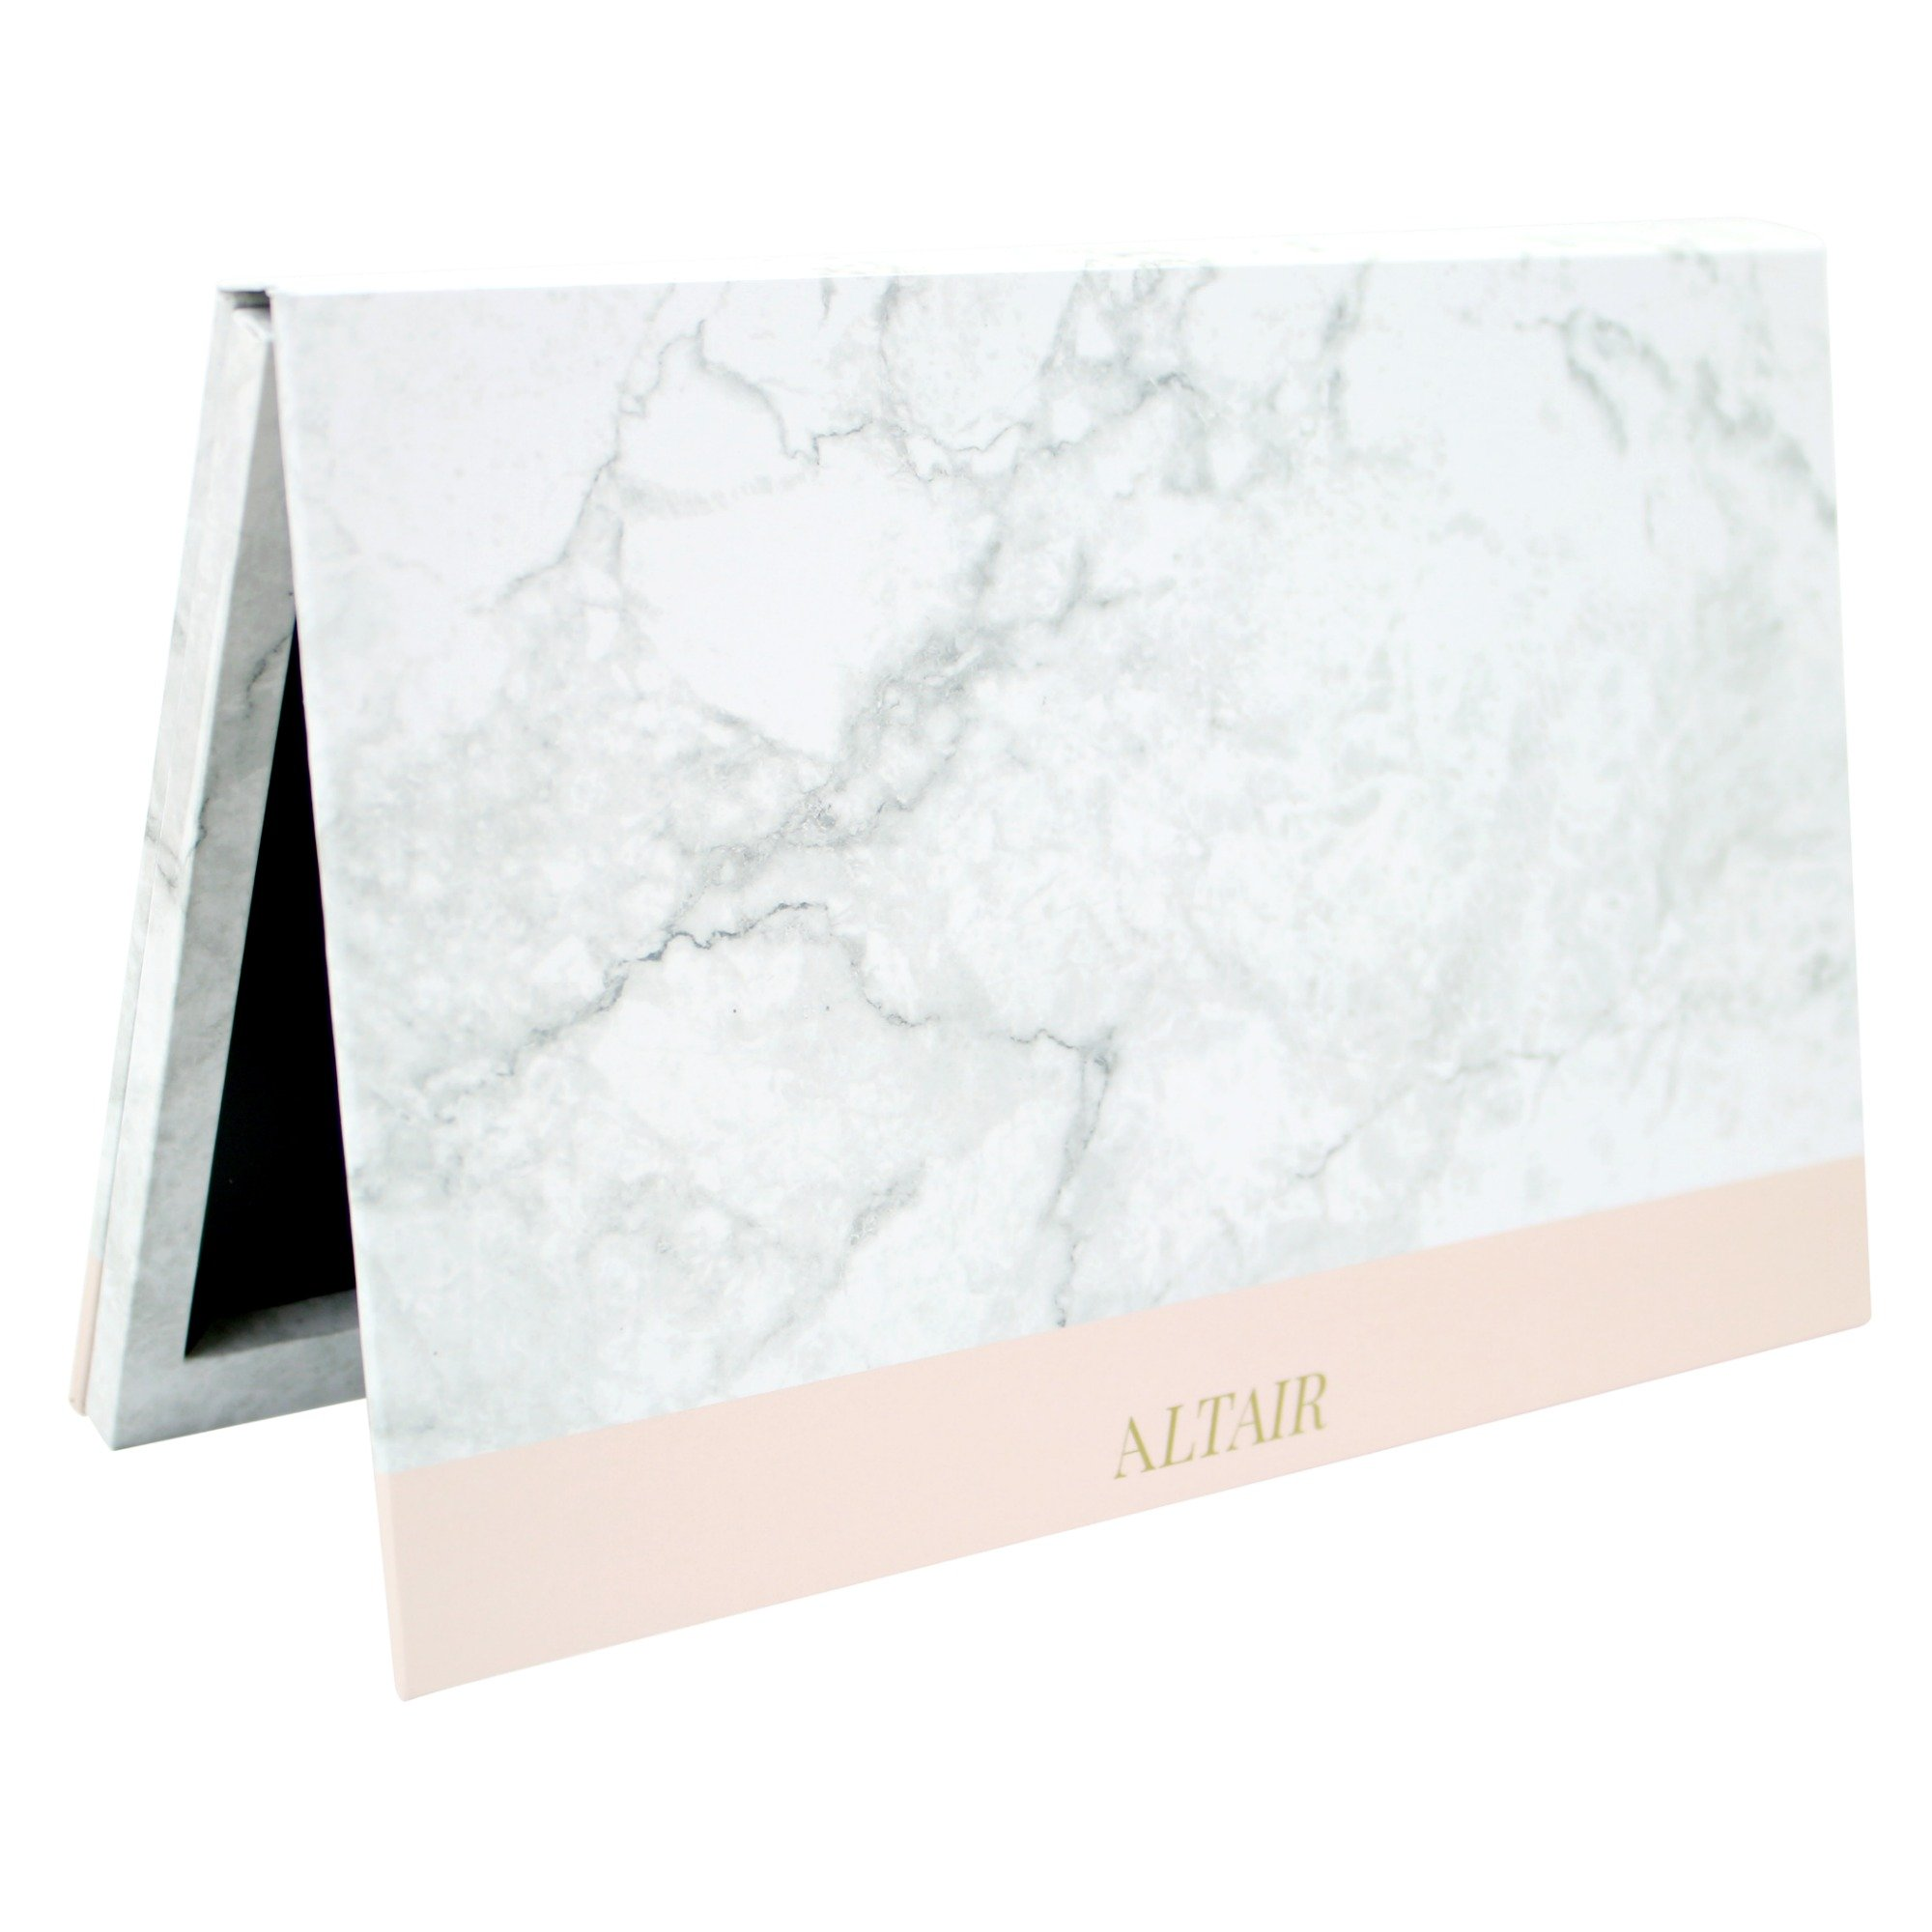 Marble Large Empty Magnetic Makeup Palette Set for Depotting with 10 pcs Magnetic Stickers. Depot Eyeshadows, Highlighters, and Blushes by Altair Beauty.